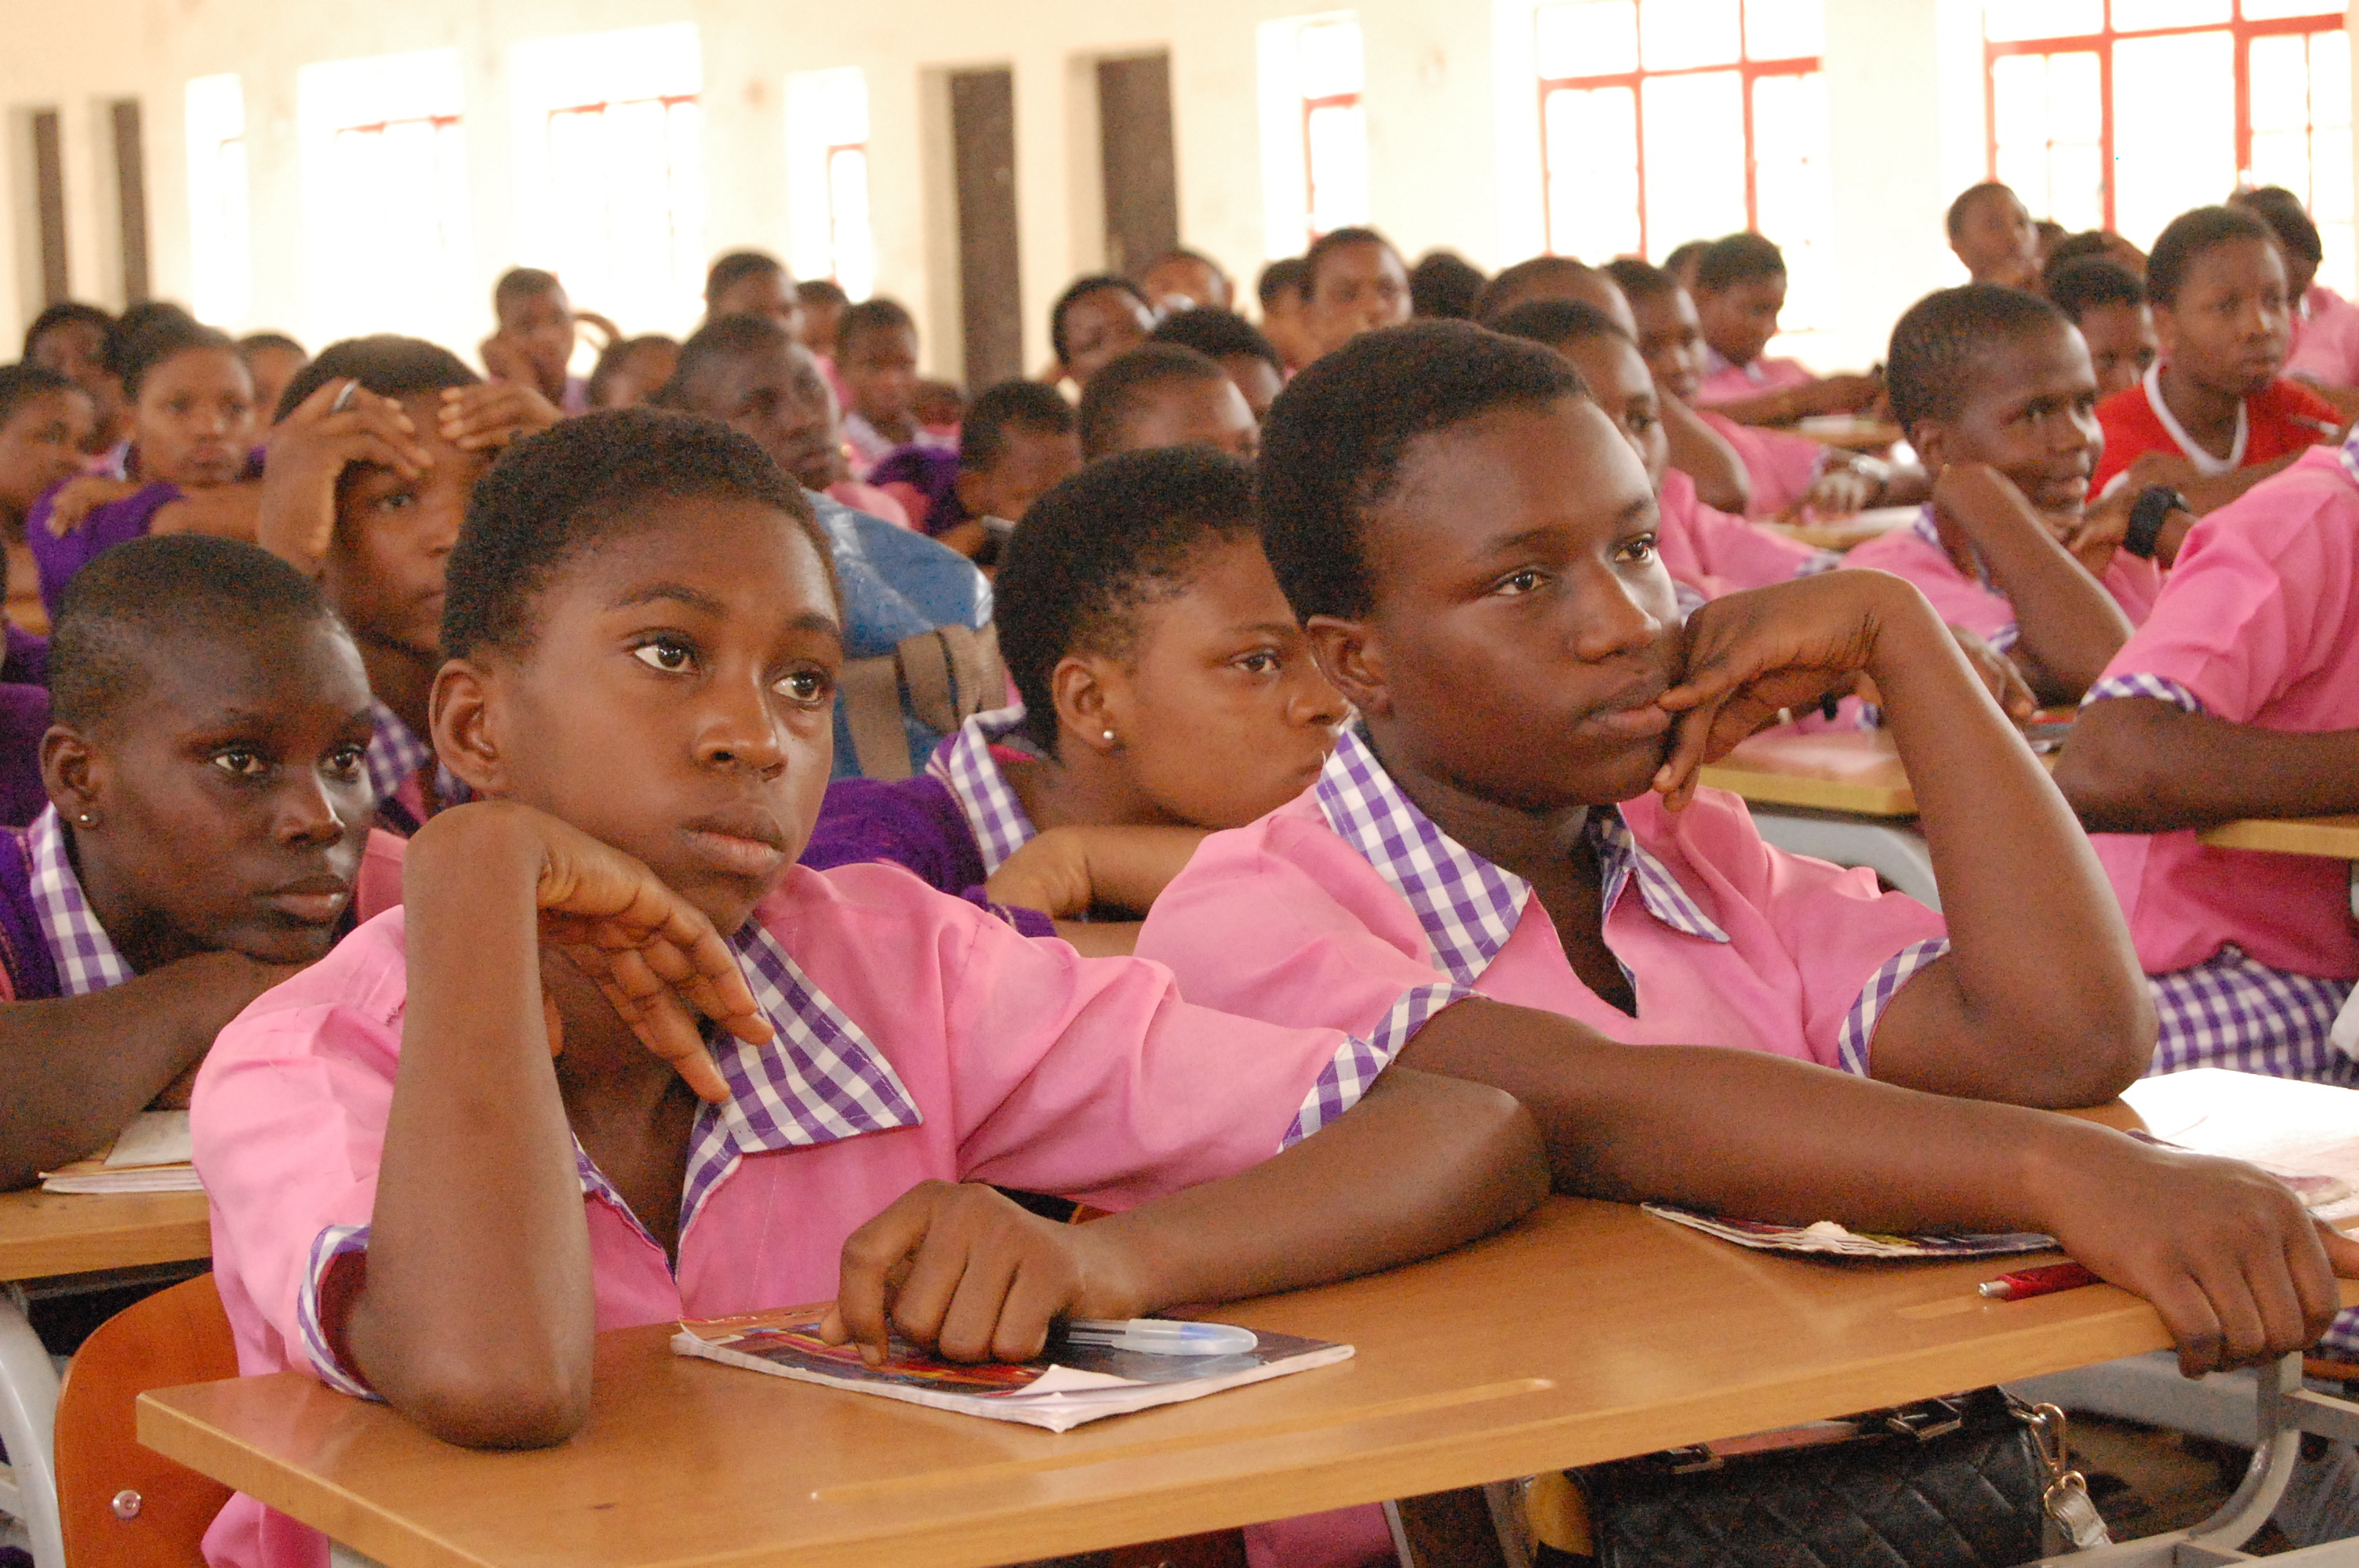 Idia College girls paying rapt attention during the presentations.